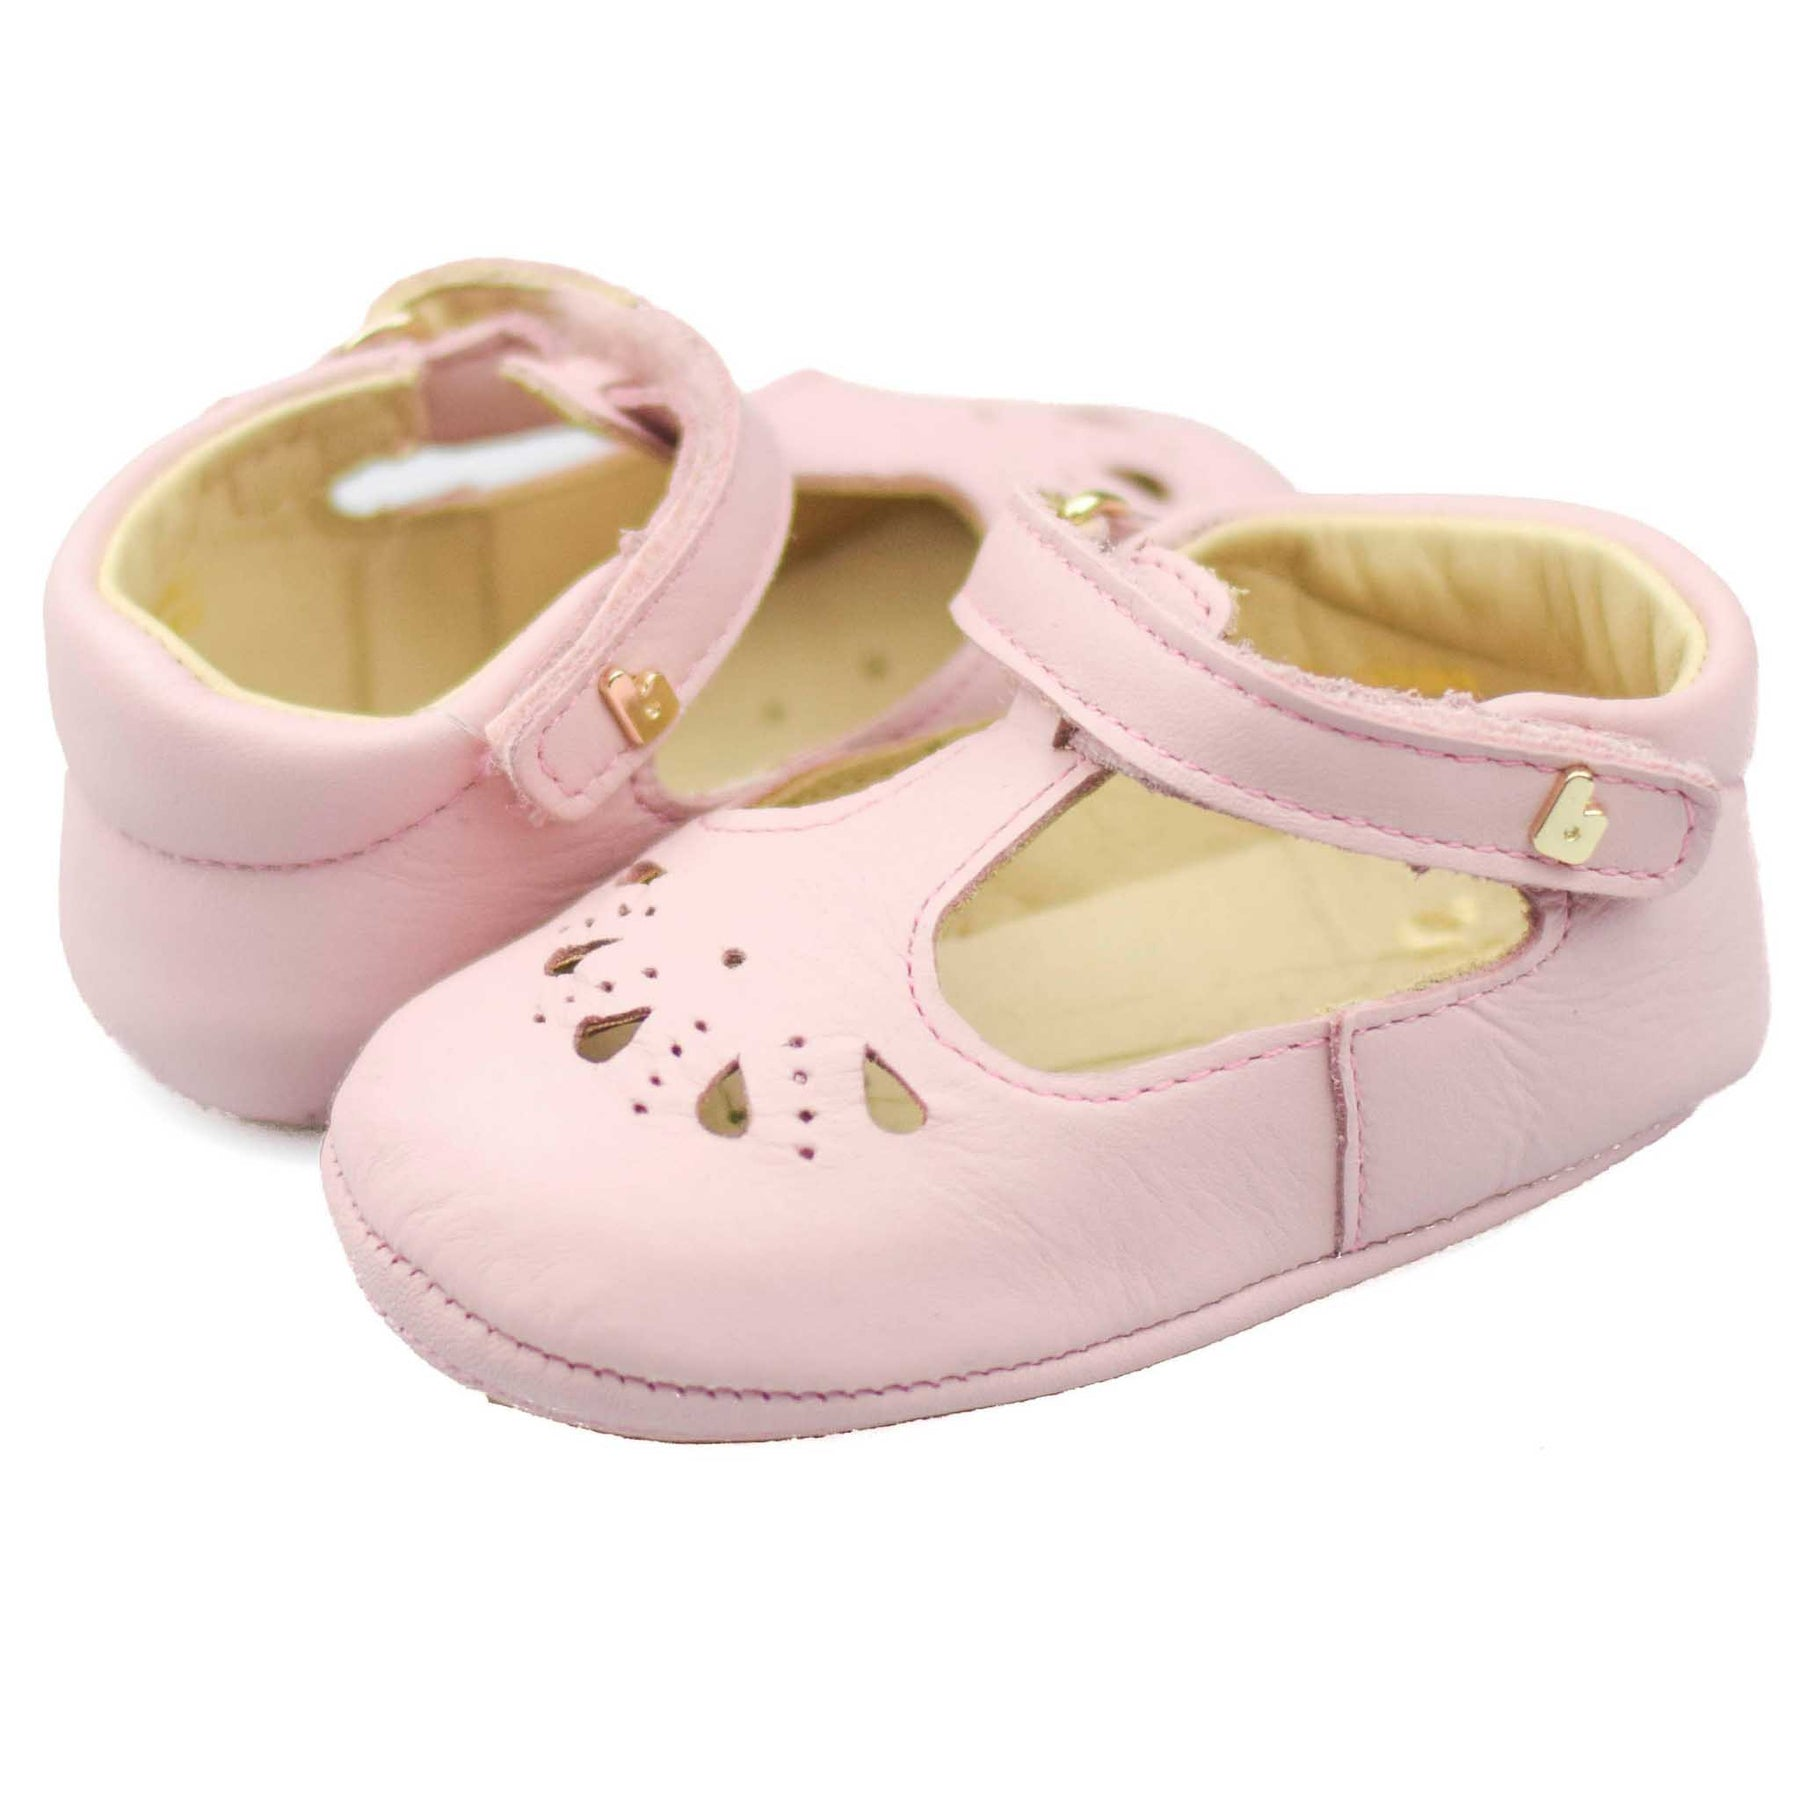 0 to 2 years. NEW SKEANIE Pre-walker Leather T-Bar Shoes Rose Gold